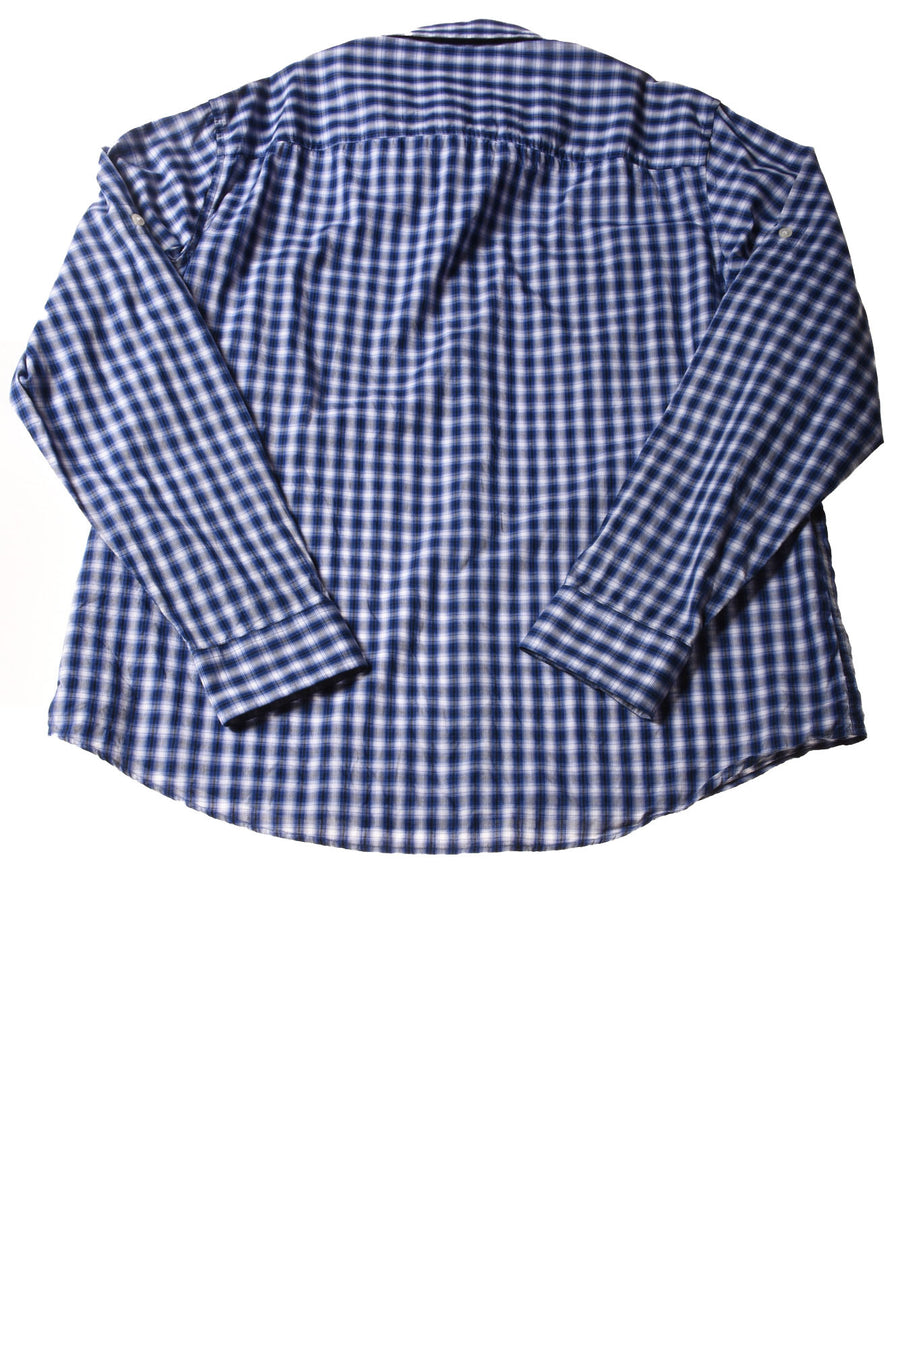 Men's Shirt By Michael Kors